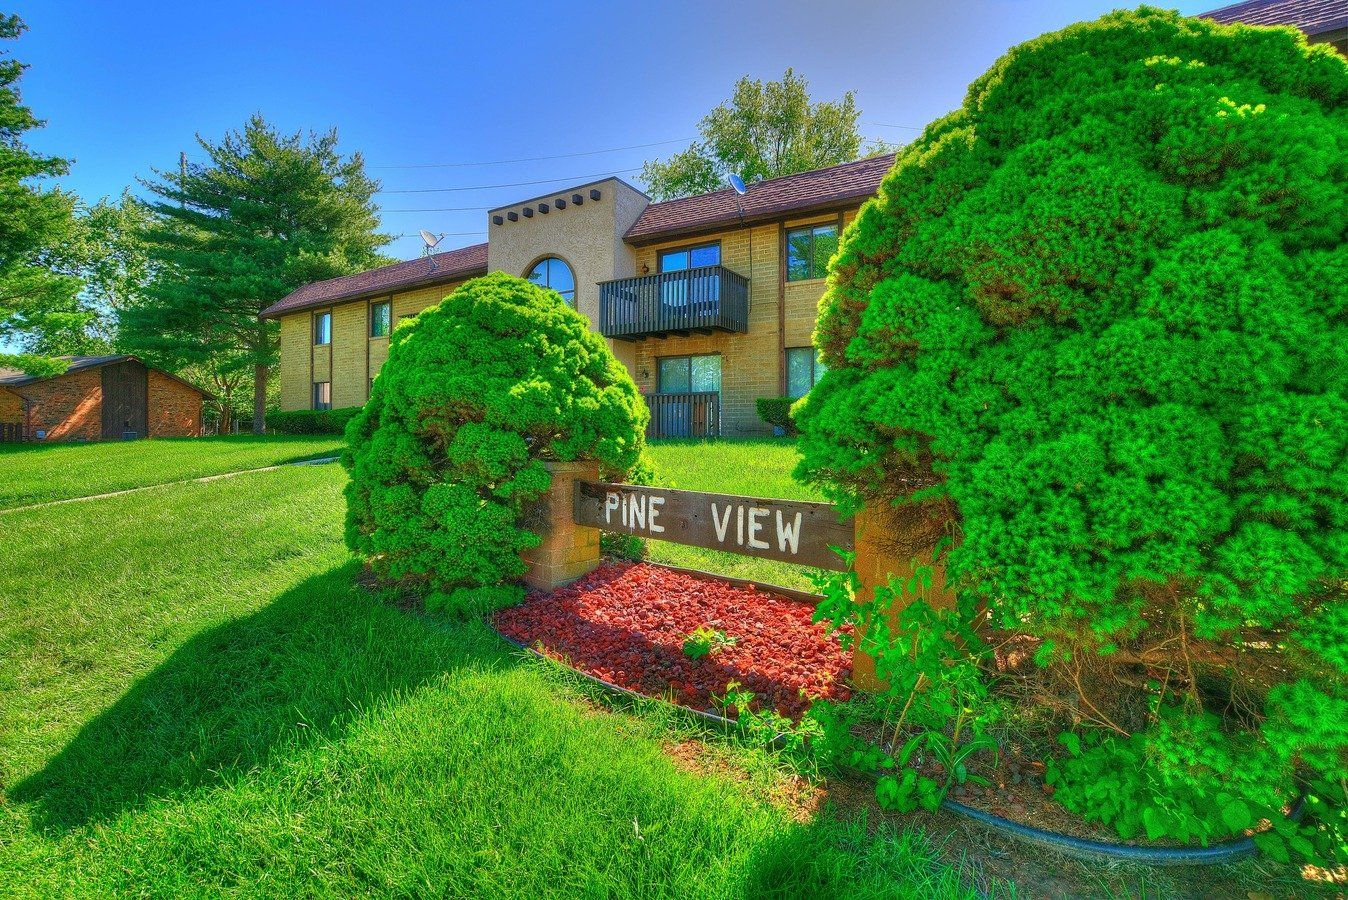 2 Bedrooms 1 Bathroom Apartment for rent at Sugar Pine Apartments in Ofallon, IL